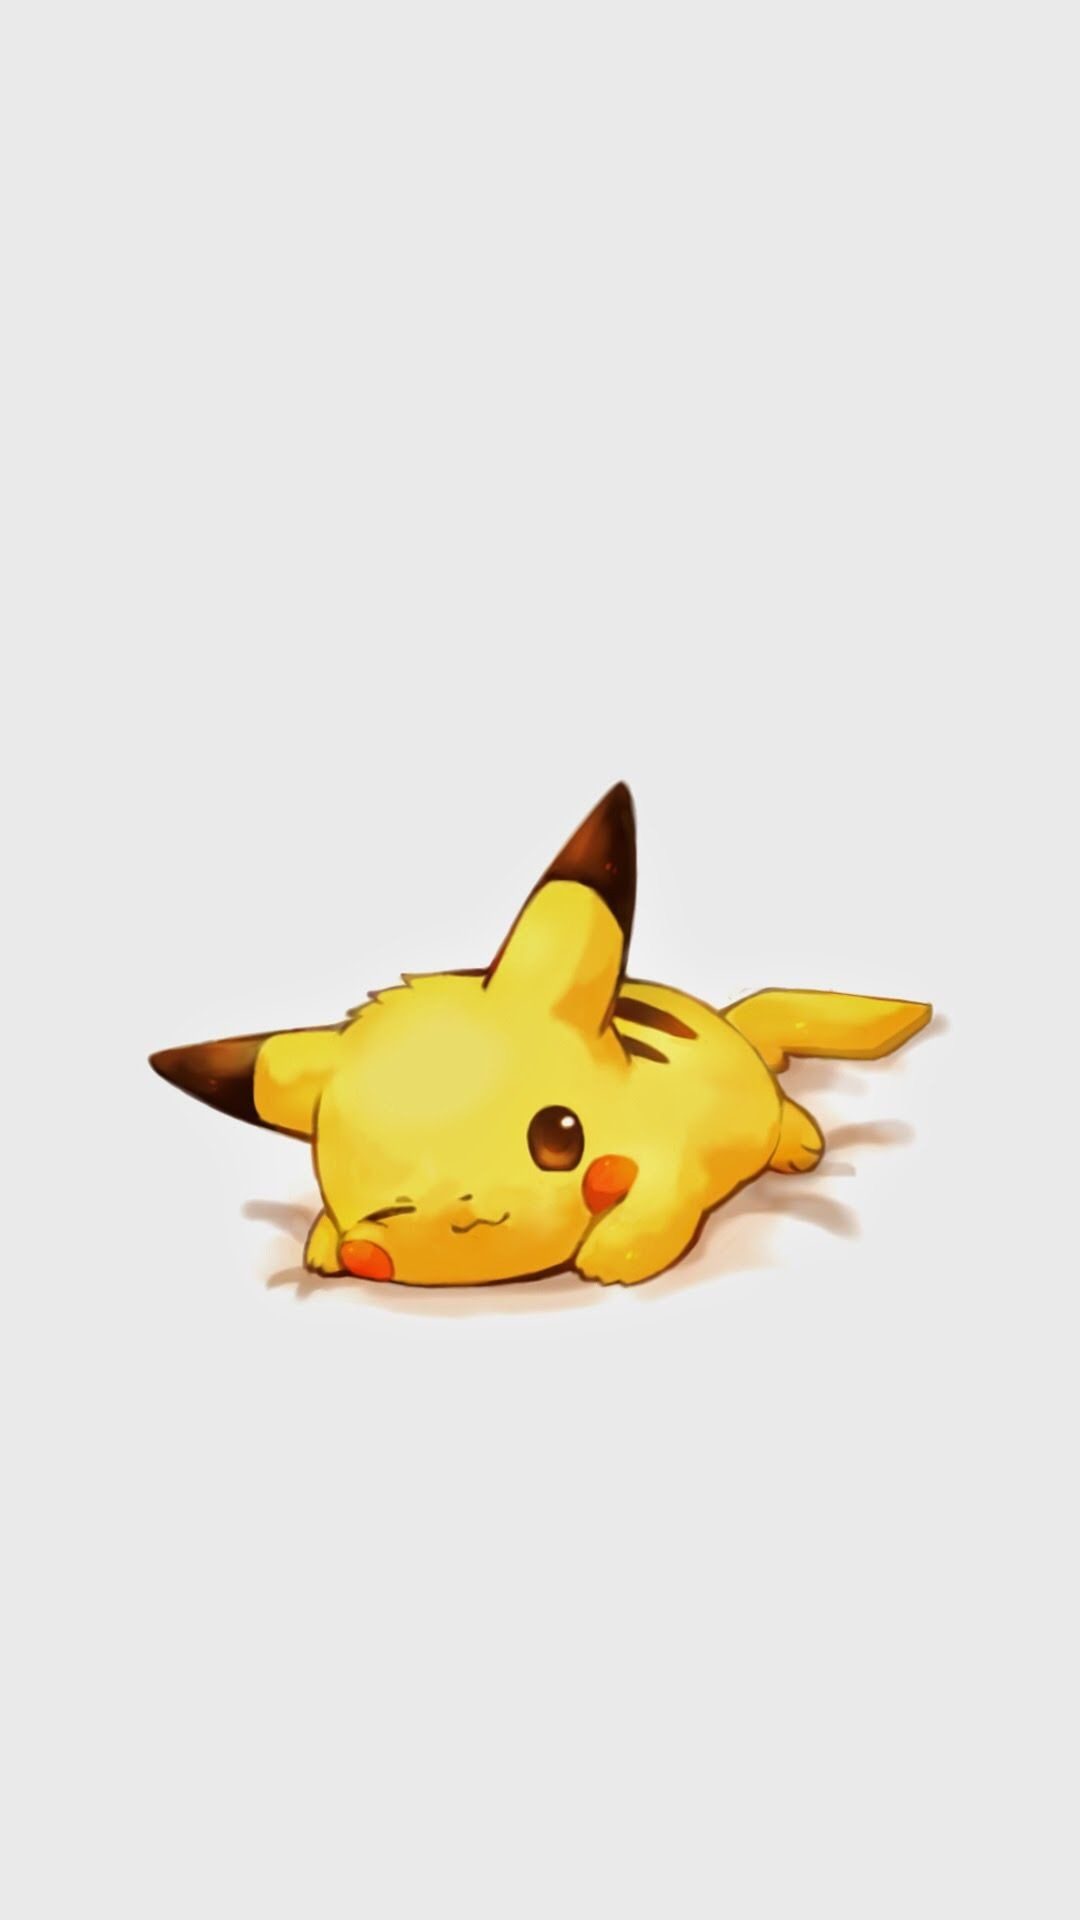 Pokemon Pikachu Wallpapers 74 Background Pictures